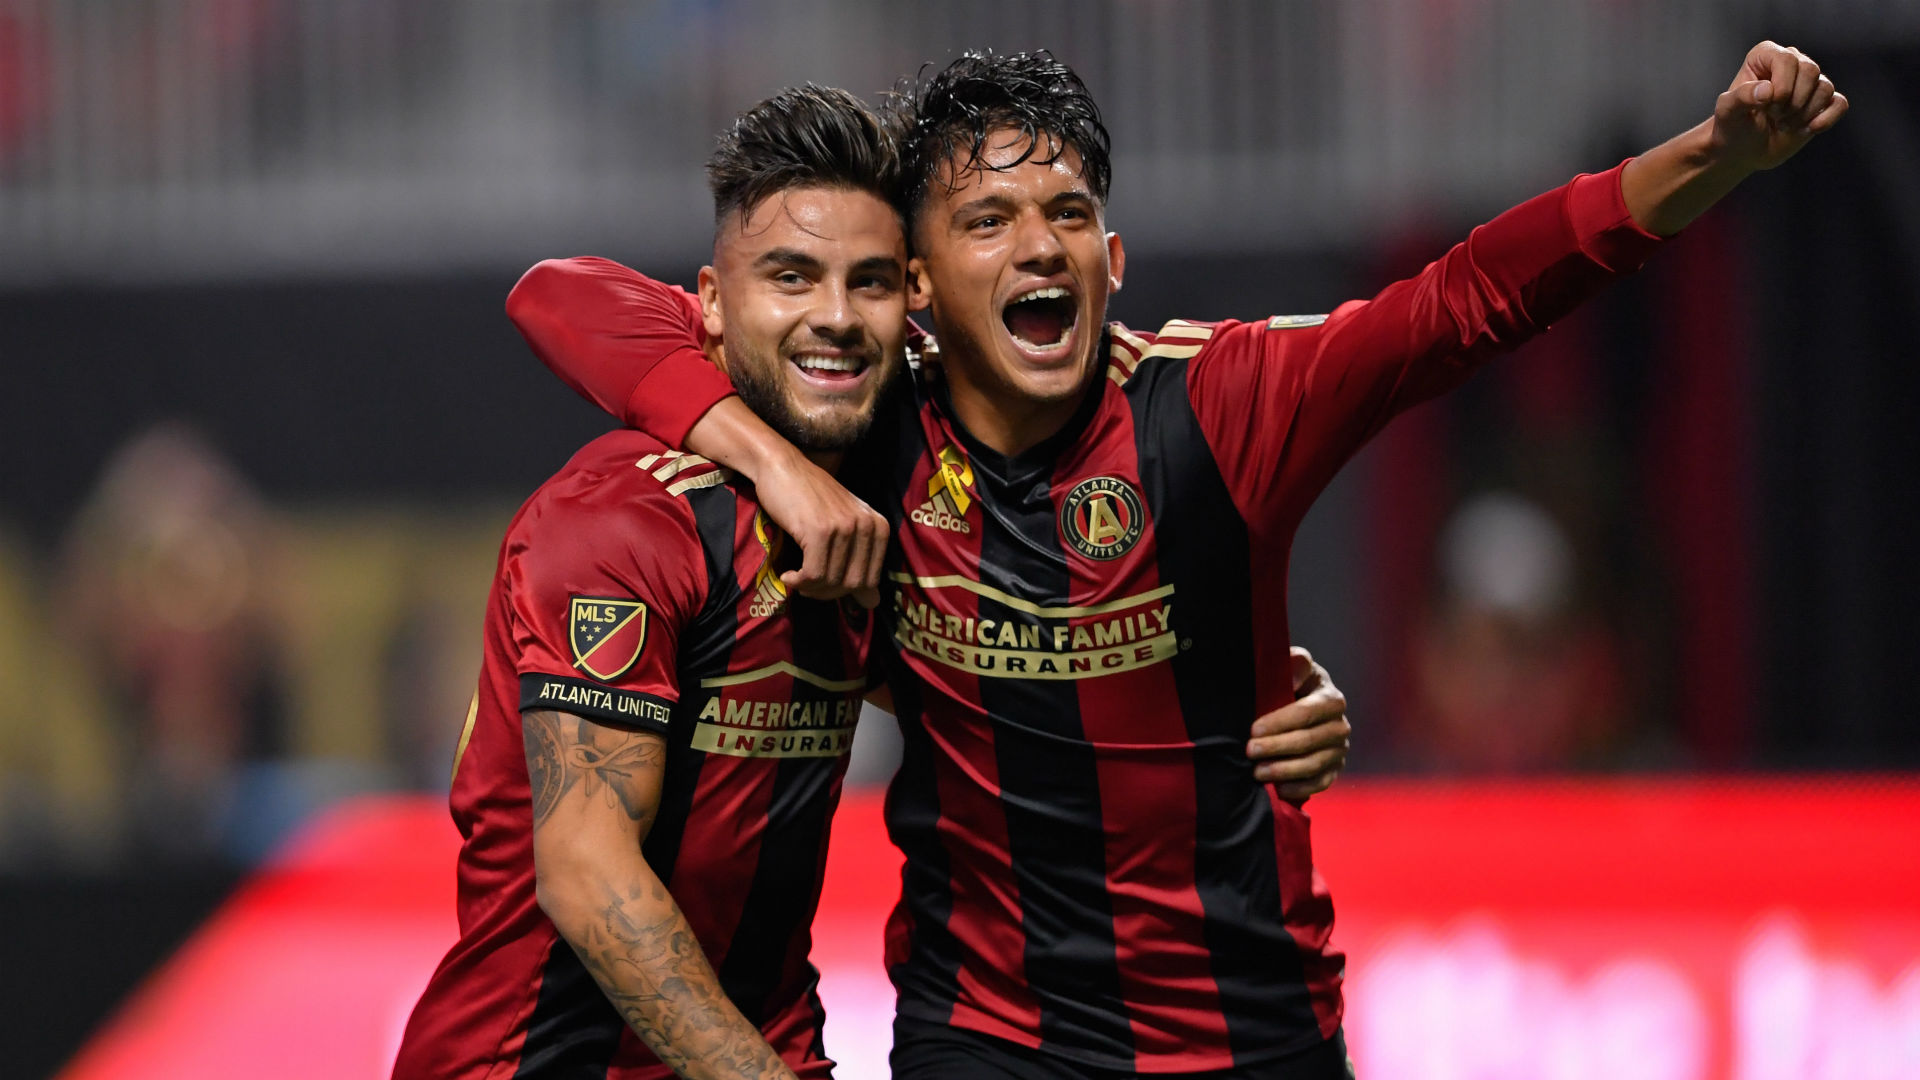 David Beckham S Inter Miami Cf Stadium Mls Debut Players All You Need To Know Goal Com